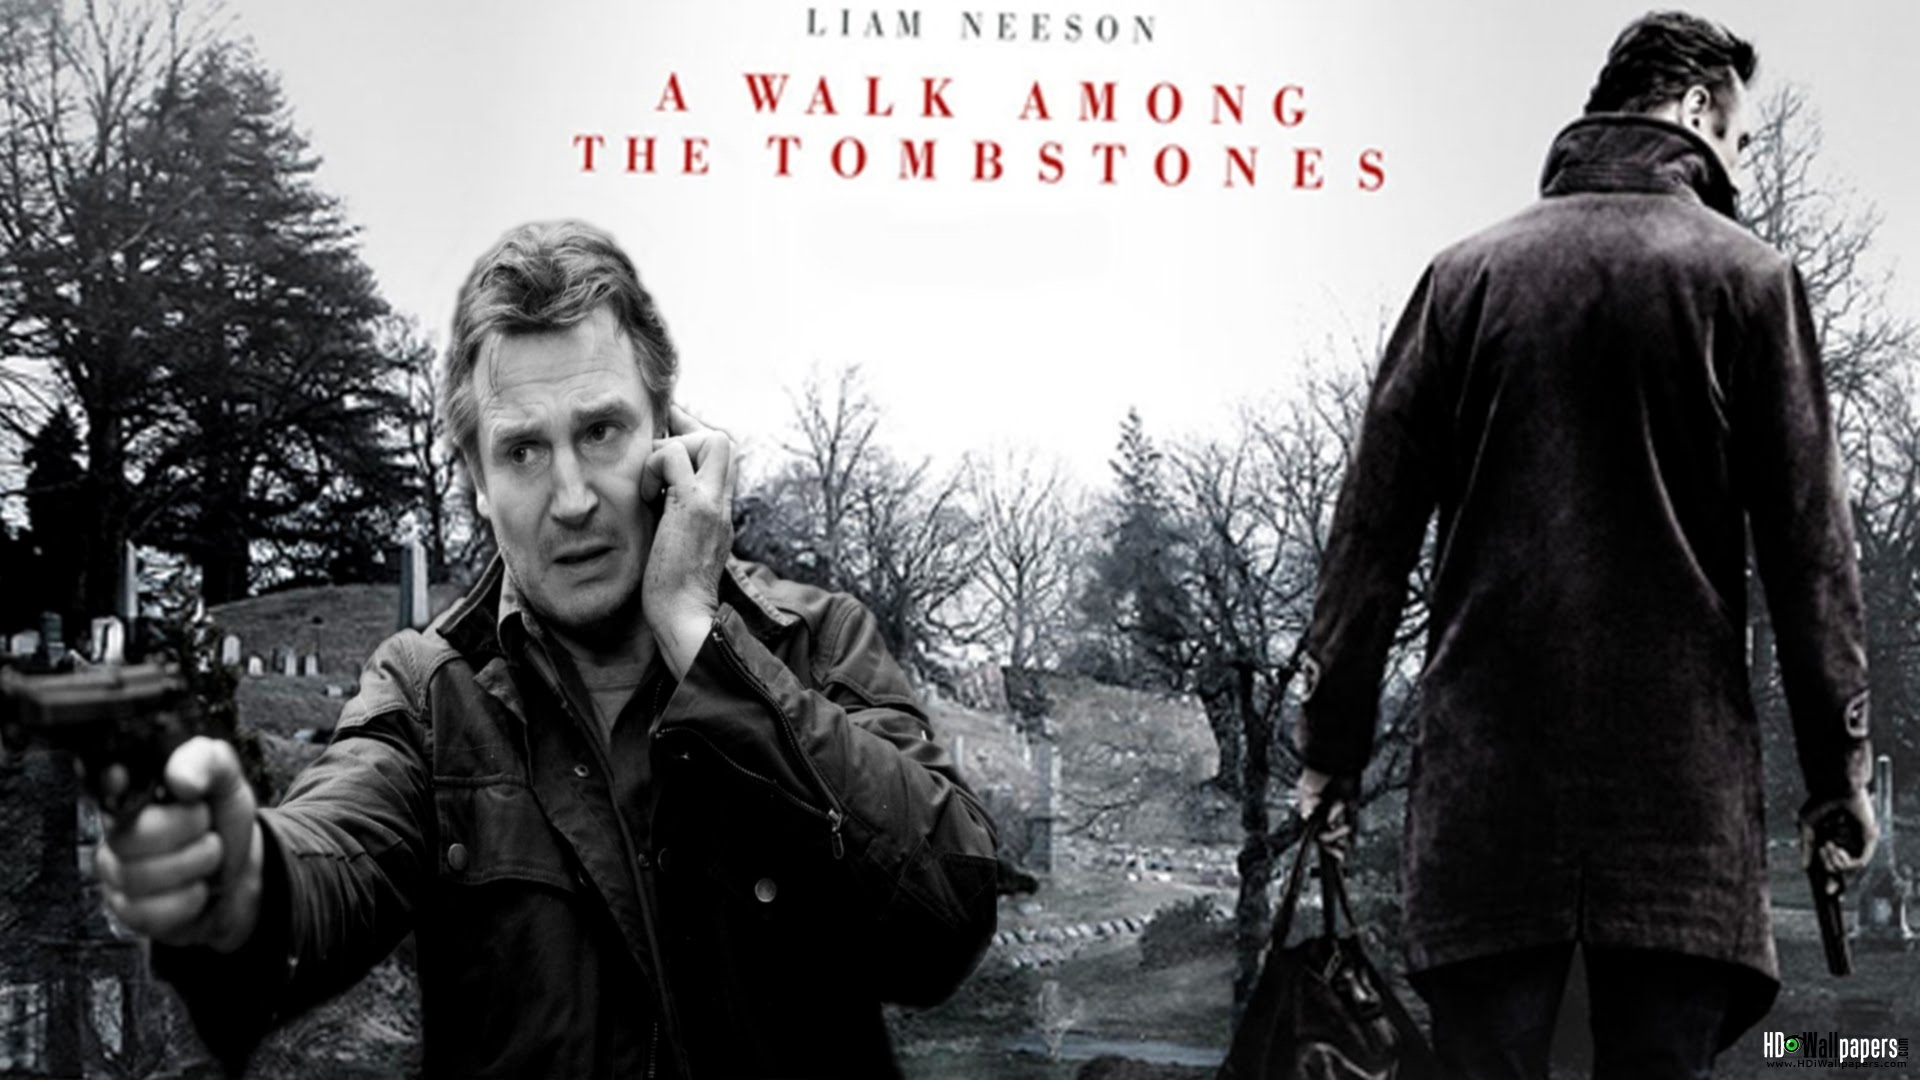 A-Walk-Among-The-Tombstones-Movie-2014-HD-Wallpapers-02